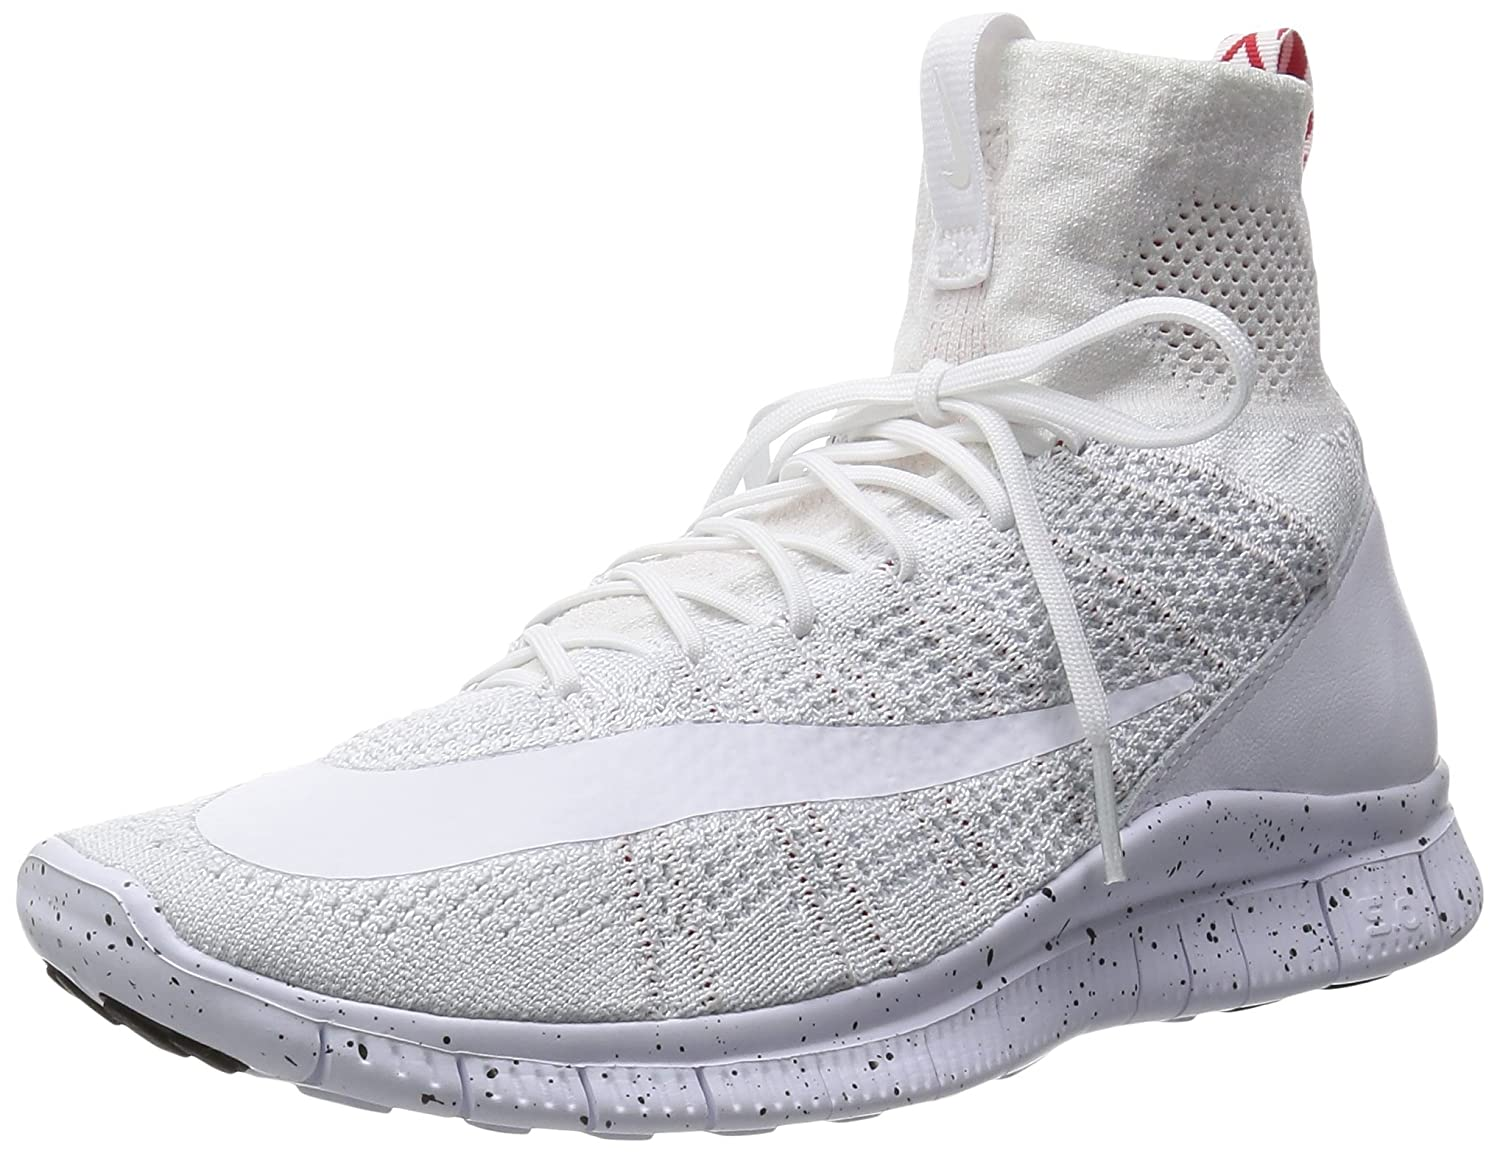 Men's Nike Free Flyknit Mercurial Running / Training Shoes